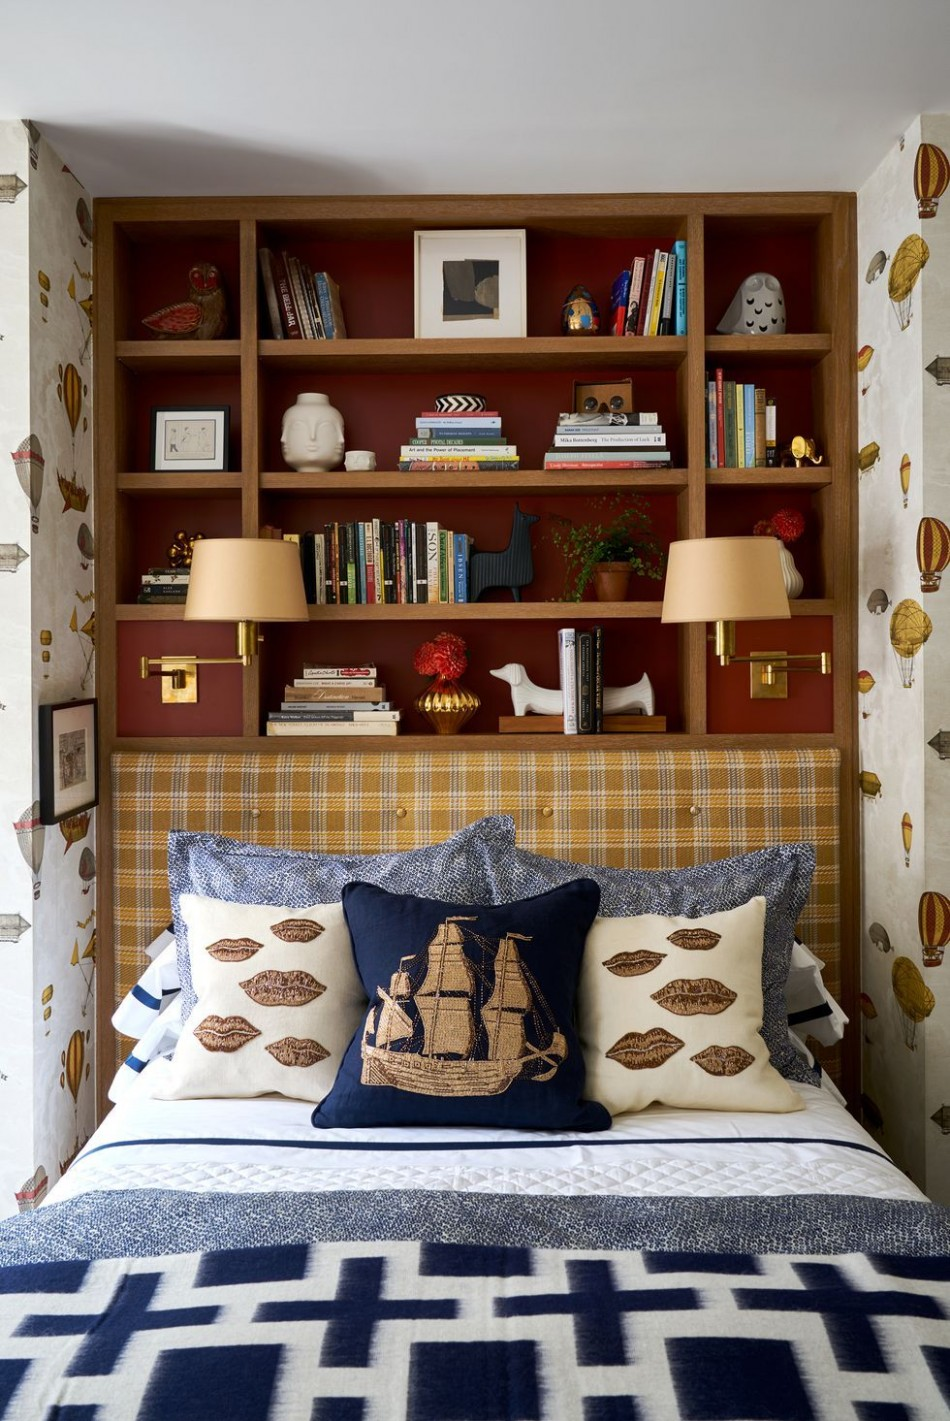 9 Small Bedroom Design Ideas - How to Decorate a Small Bedroom - Bedroom Ideas Small Room